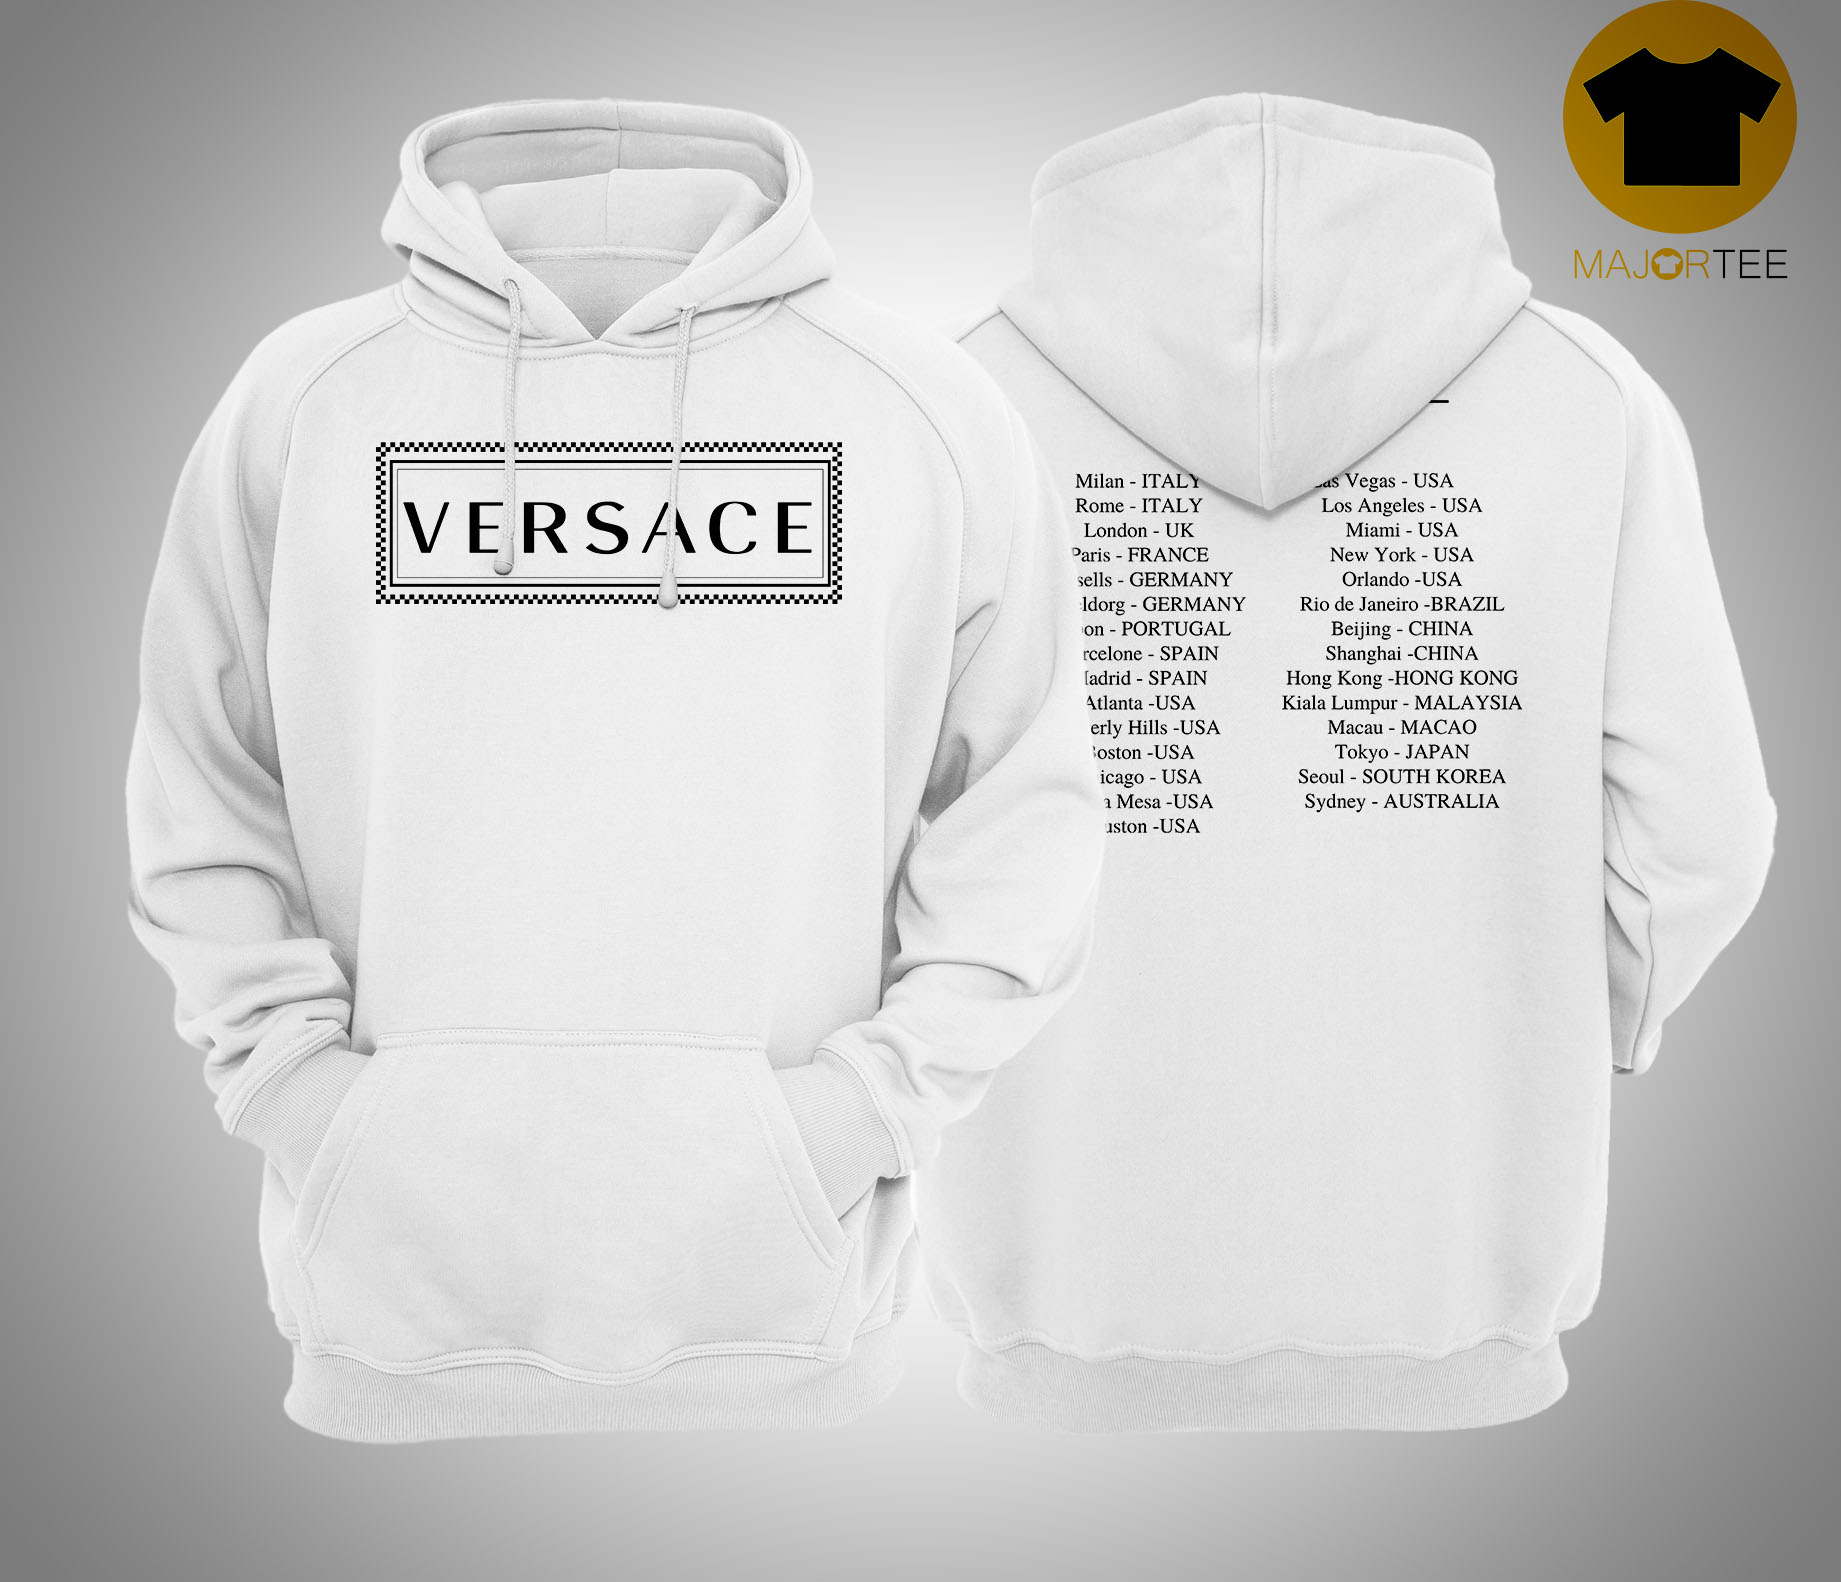 Versace Hoodie China Controversy